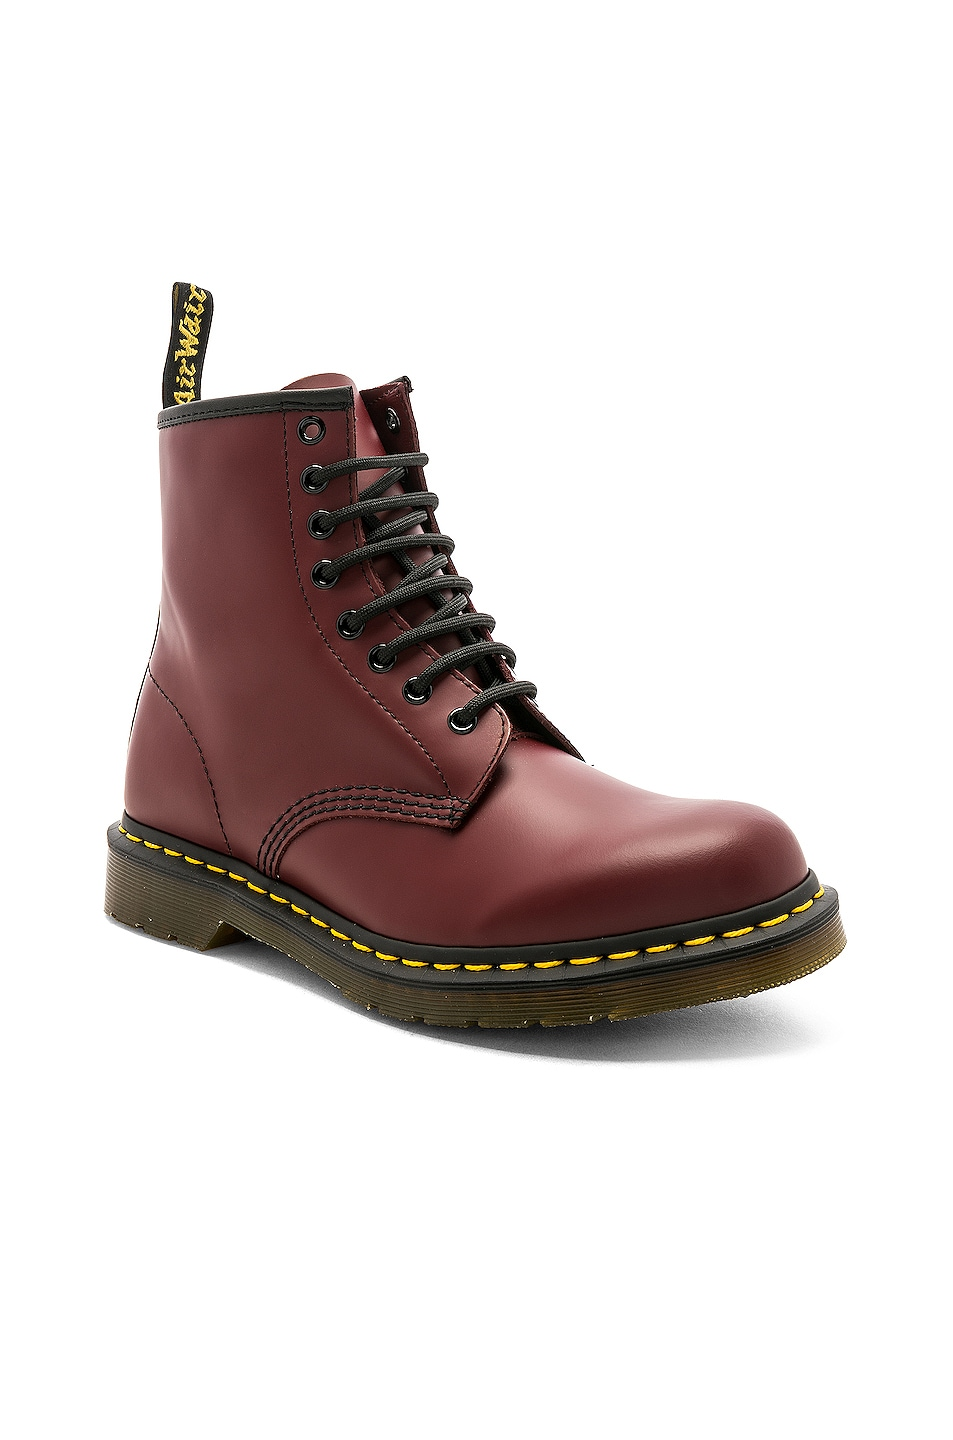 Image 2 of Dr. Martens 1460 8 Eye Boot in Cherry Red